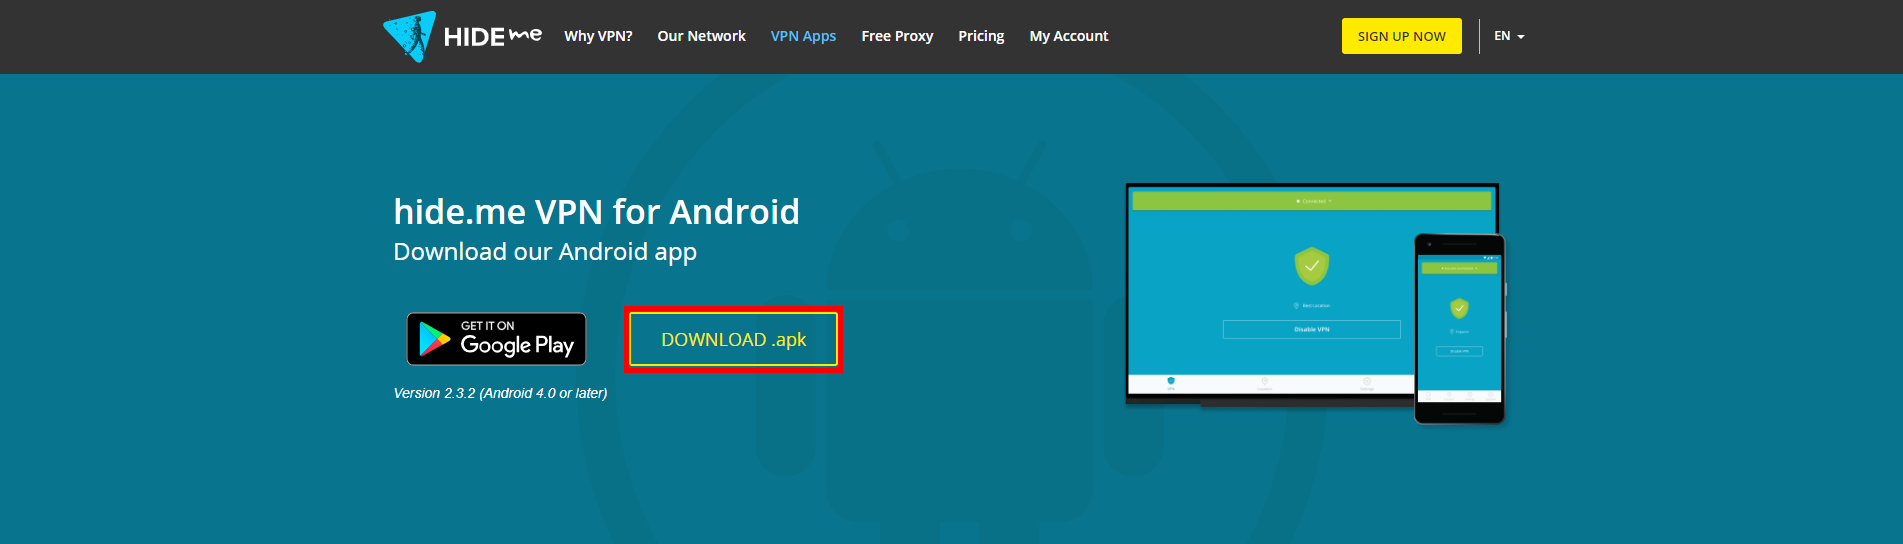 Android VPN client download .apk